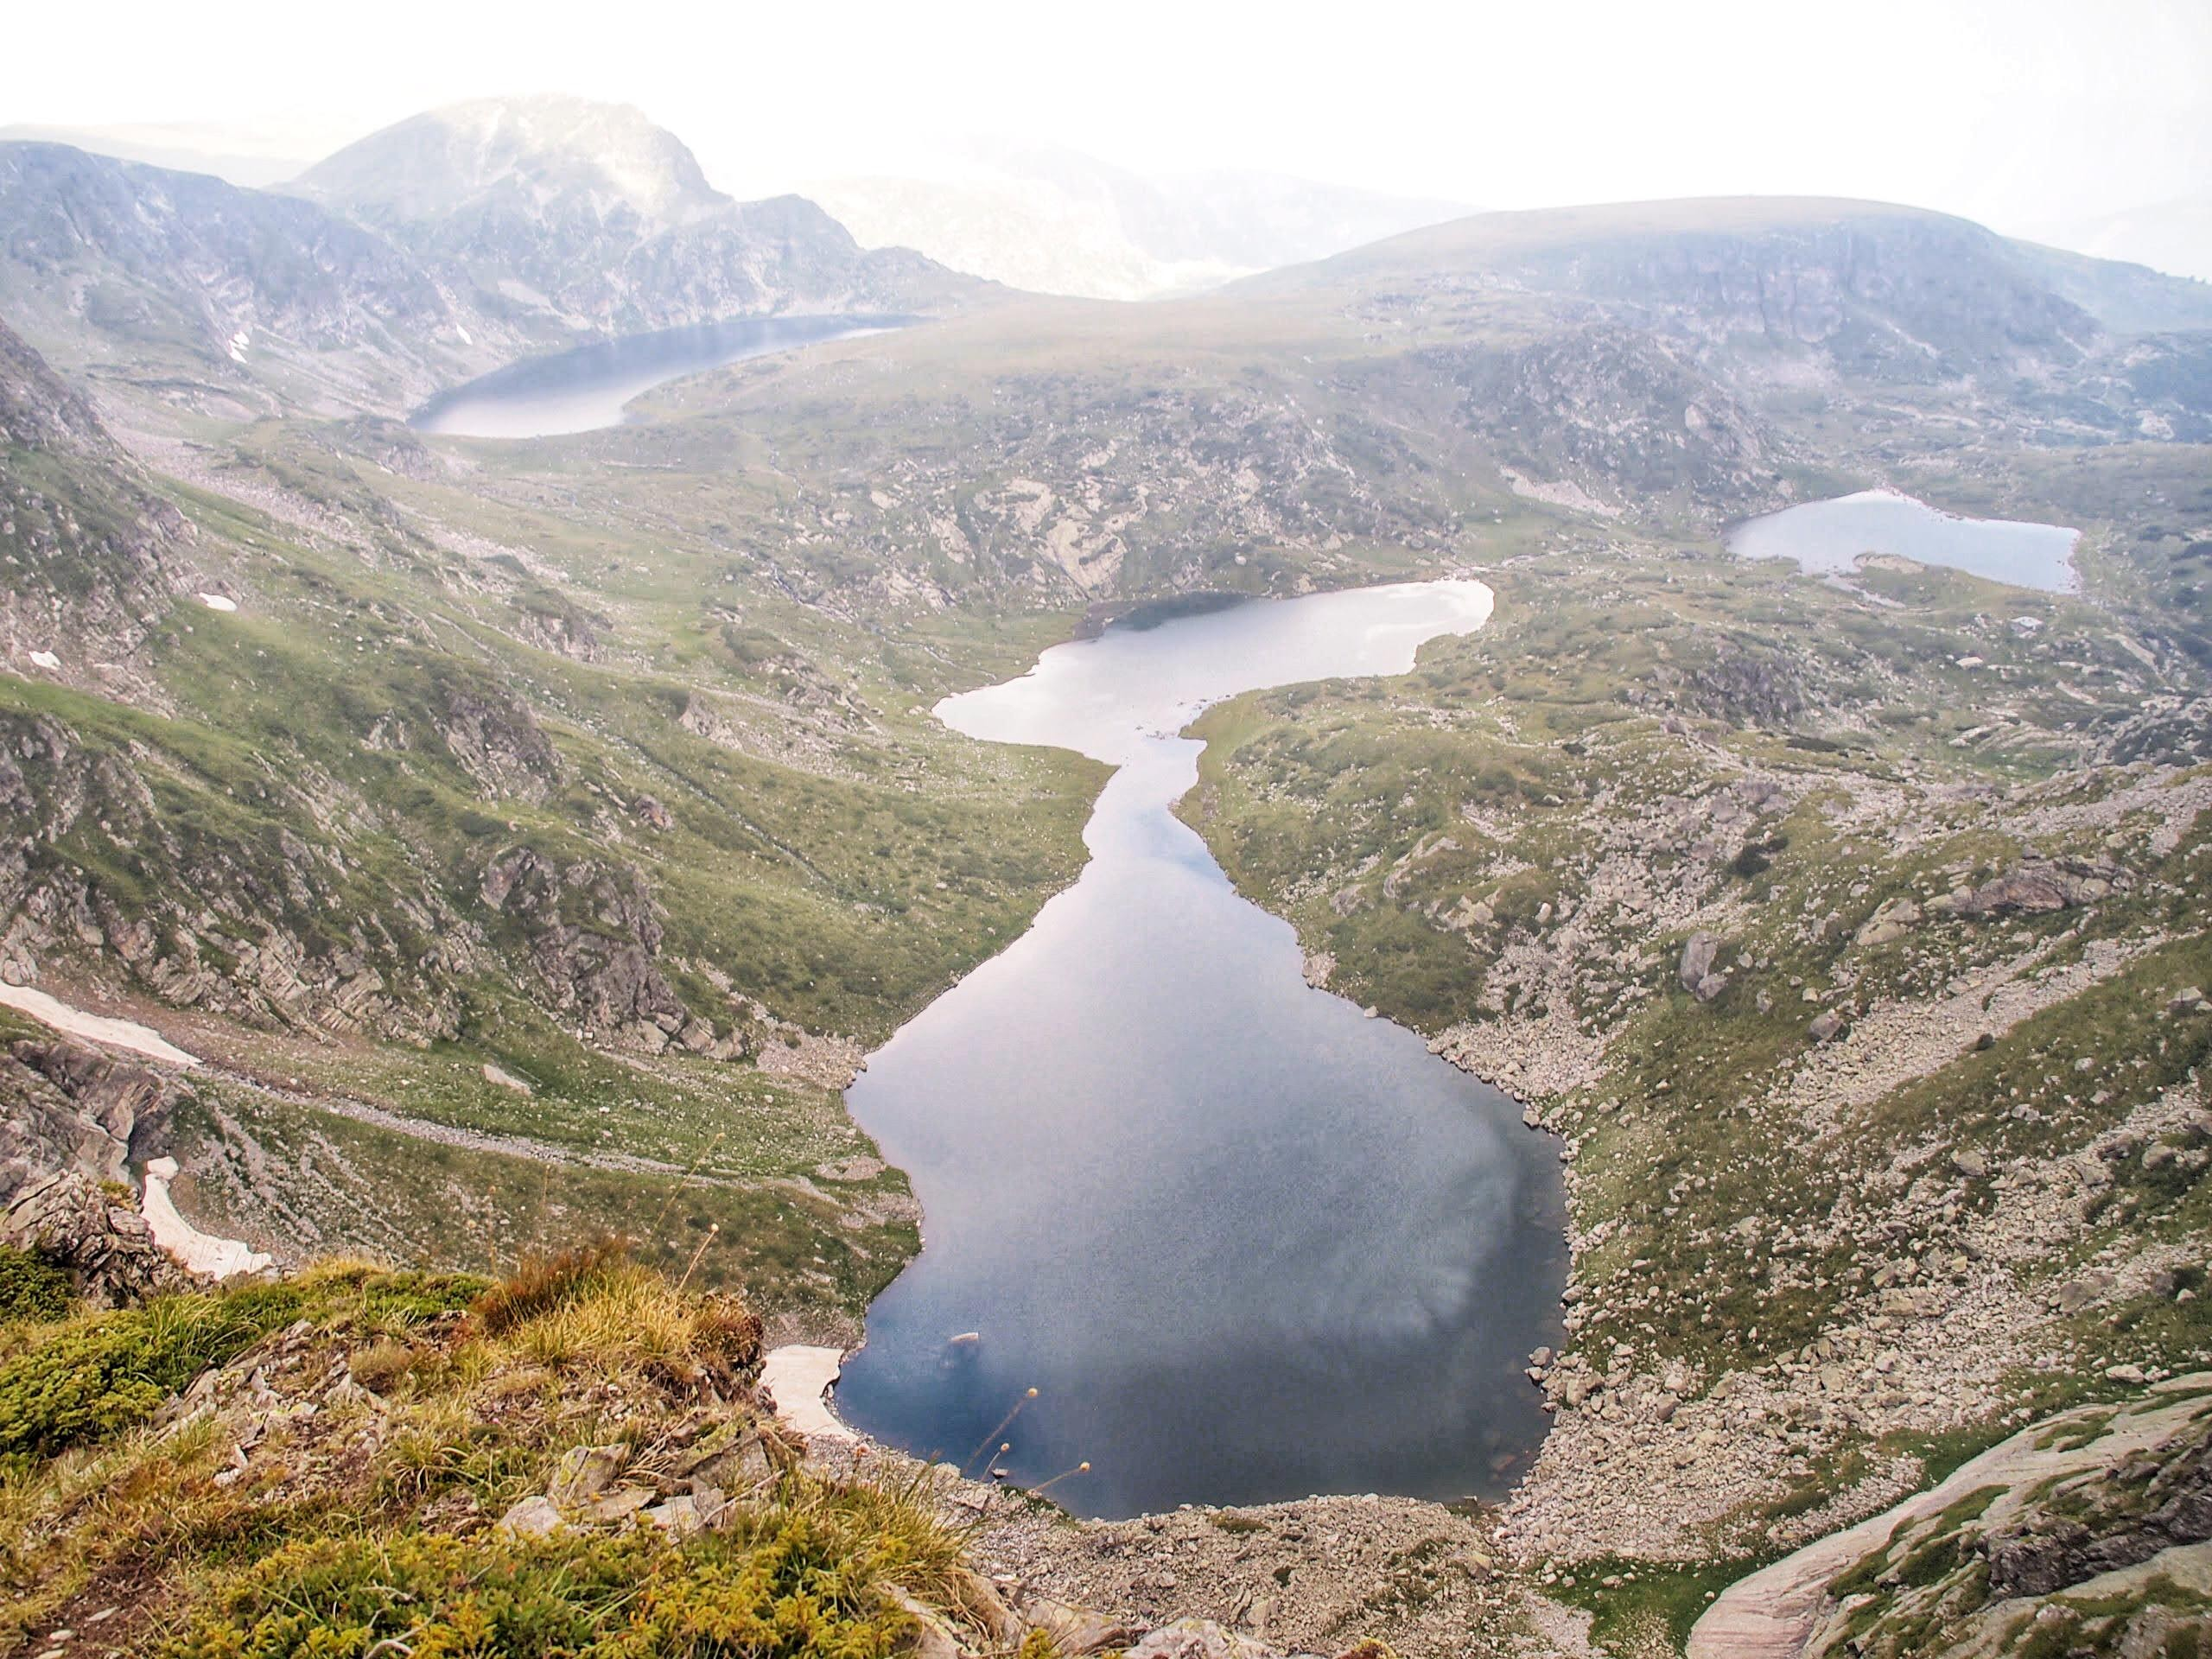 A teardrop-shaped lake in Rila